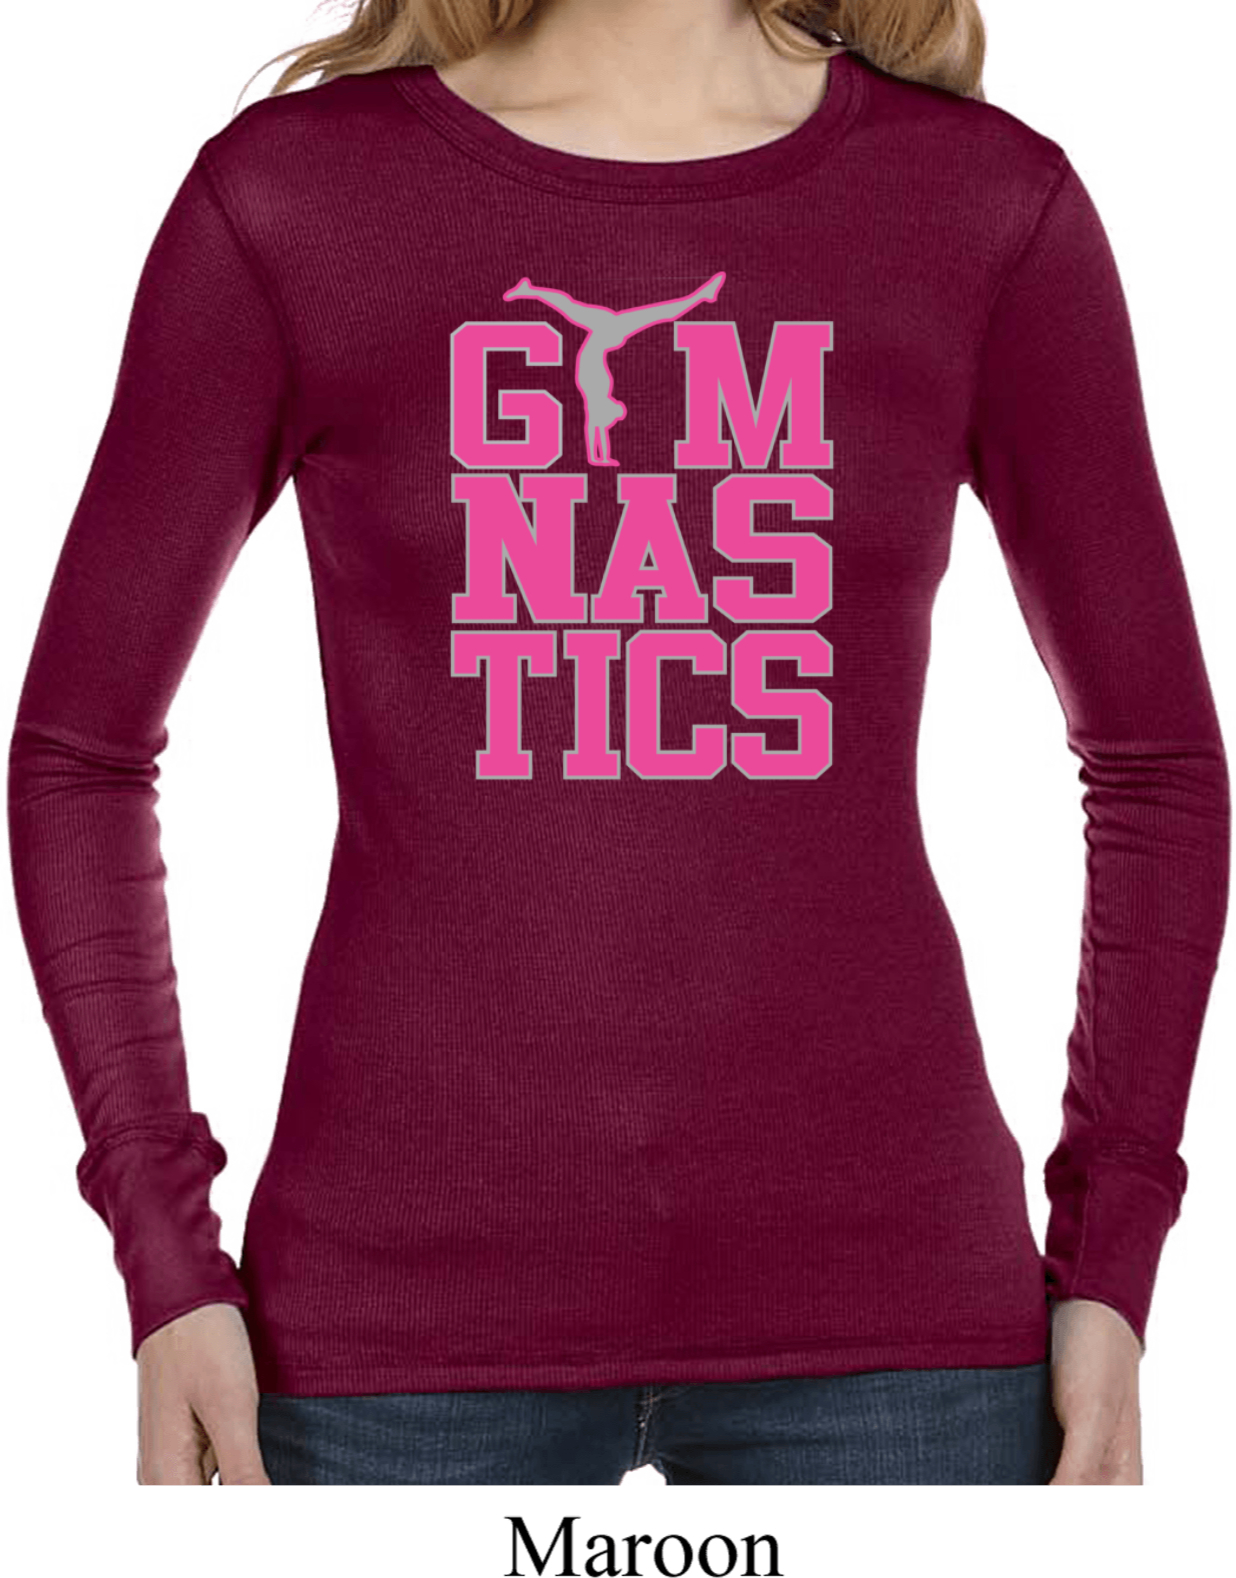 Ladies shirt gymnastics text long sleeve thermal tee t for Photo t shirts with text